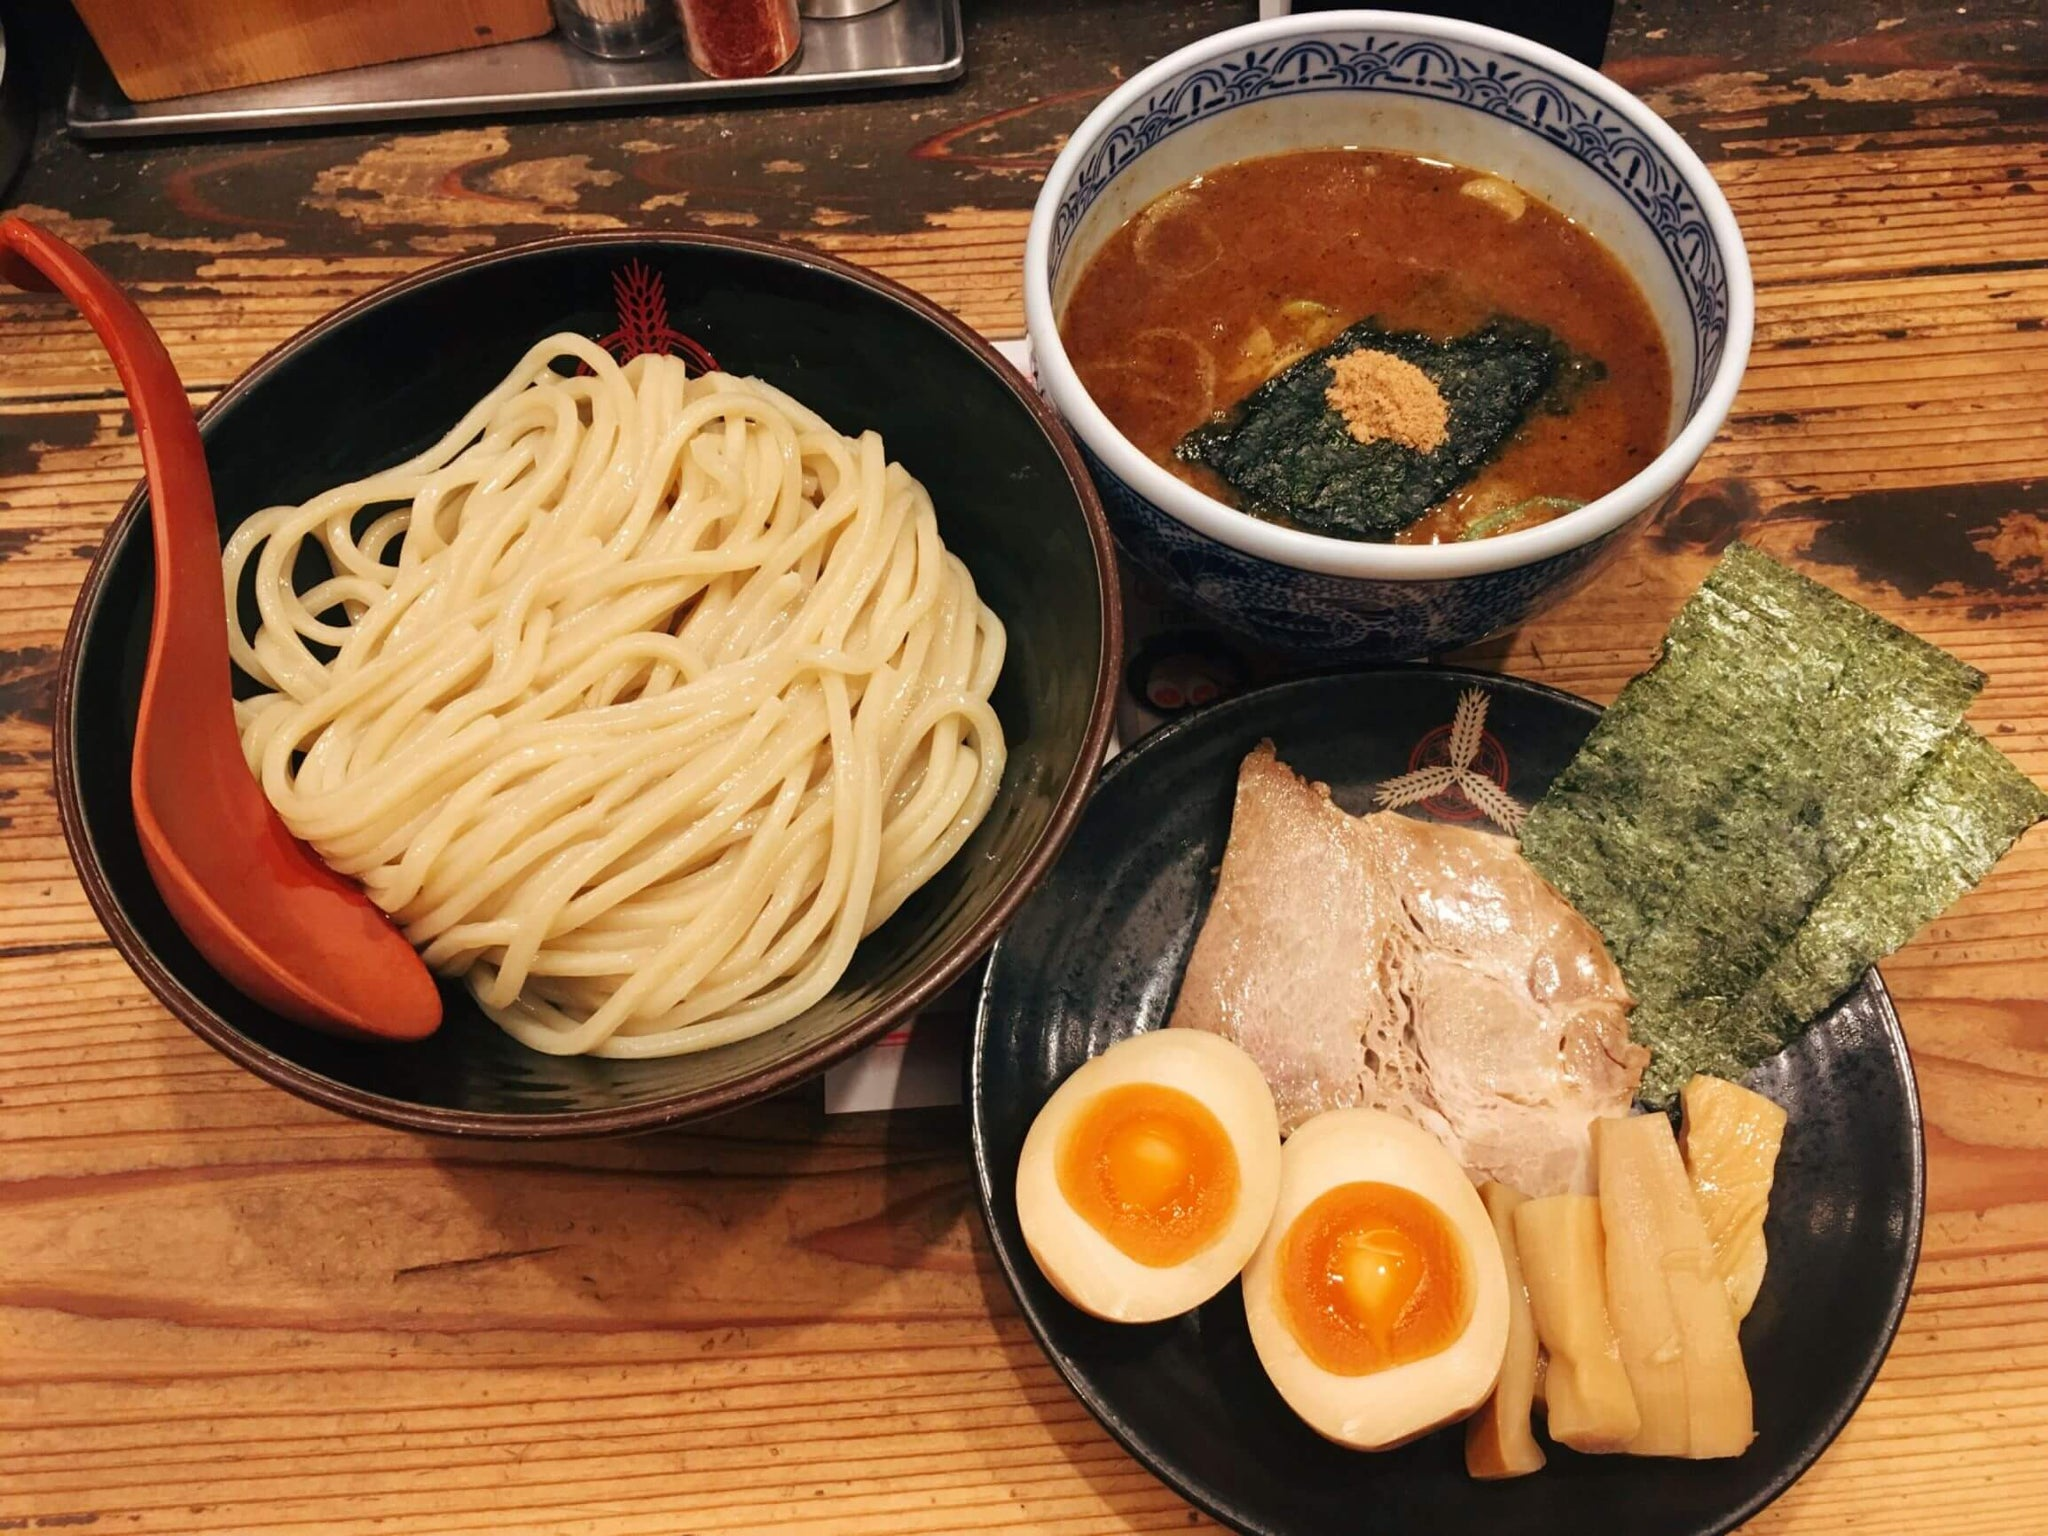 tsukemen, the noodles, broth and toppings are served in three different bowls.